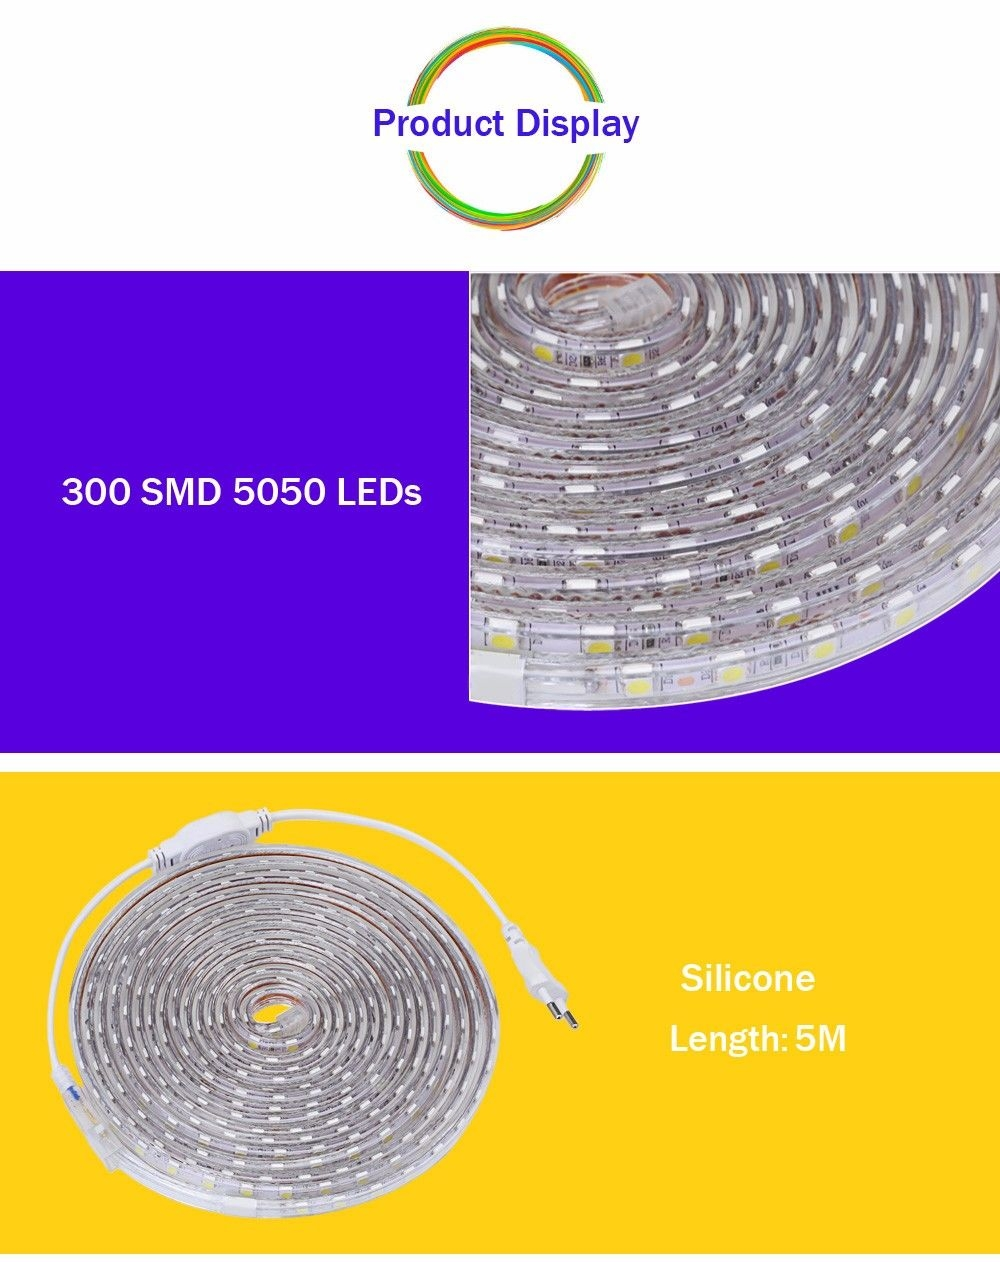 AC 220V 1000LM 5M LED Strip Light Waterproof Lamp with 300 LEDs